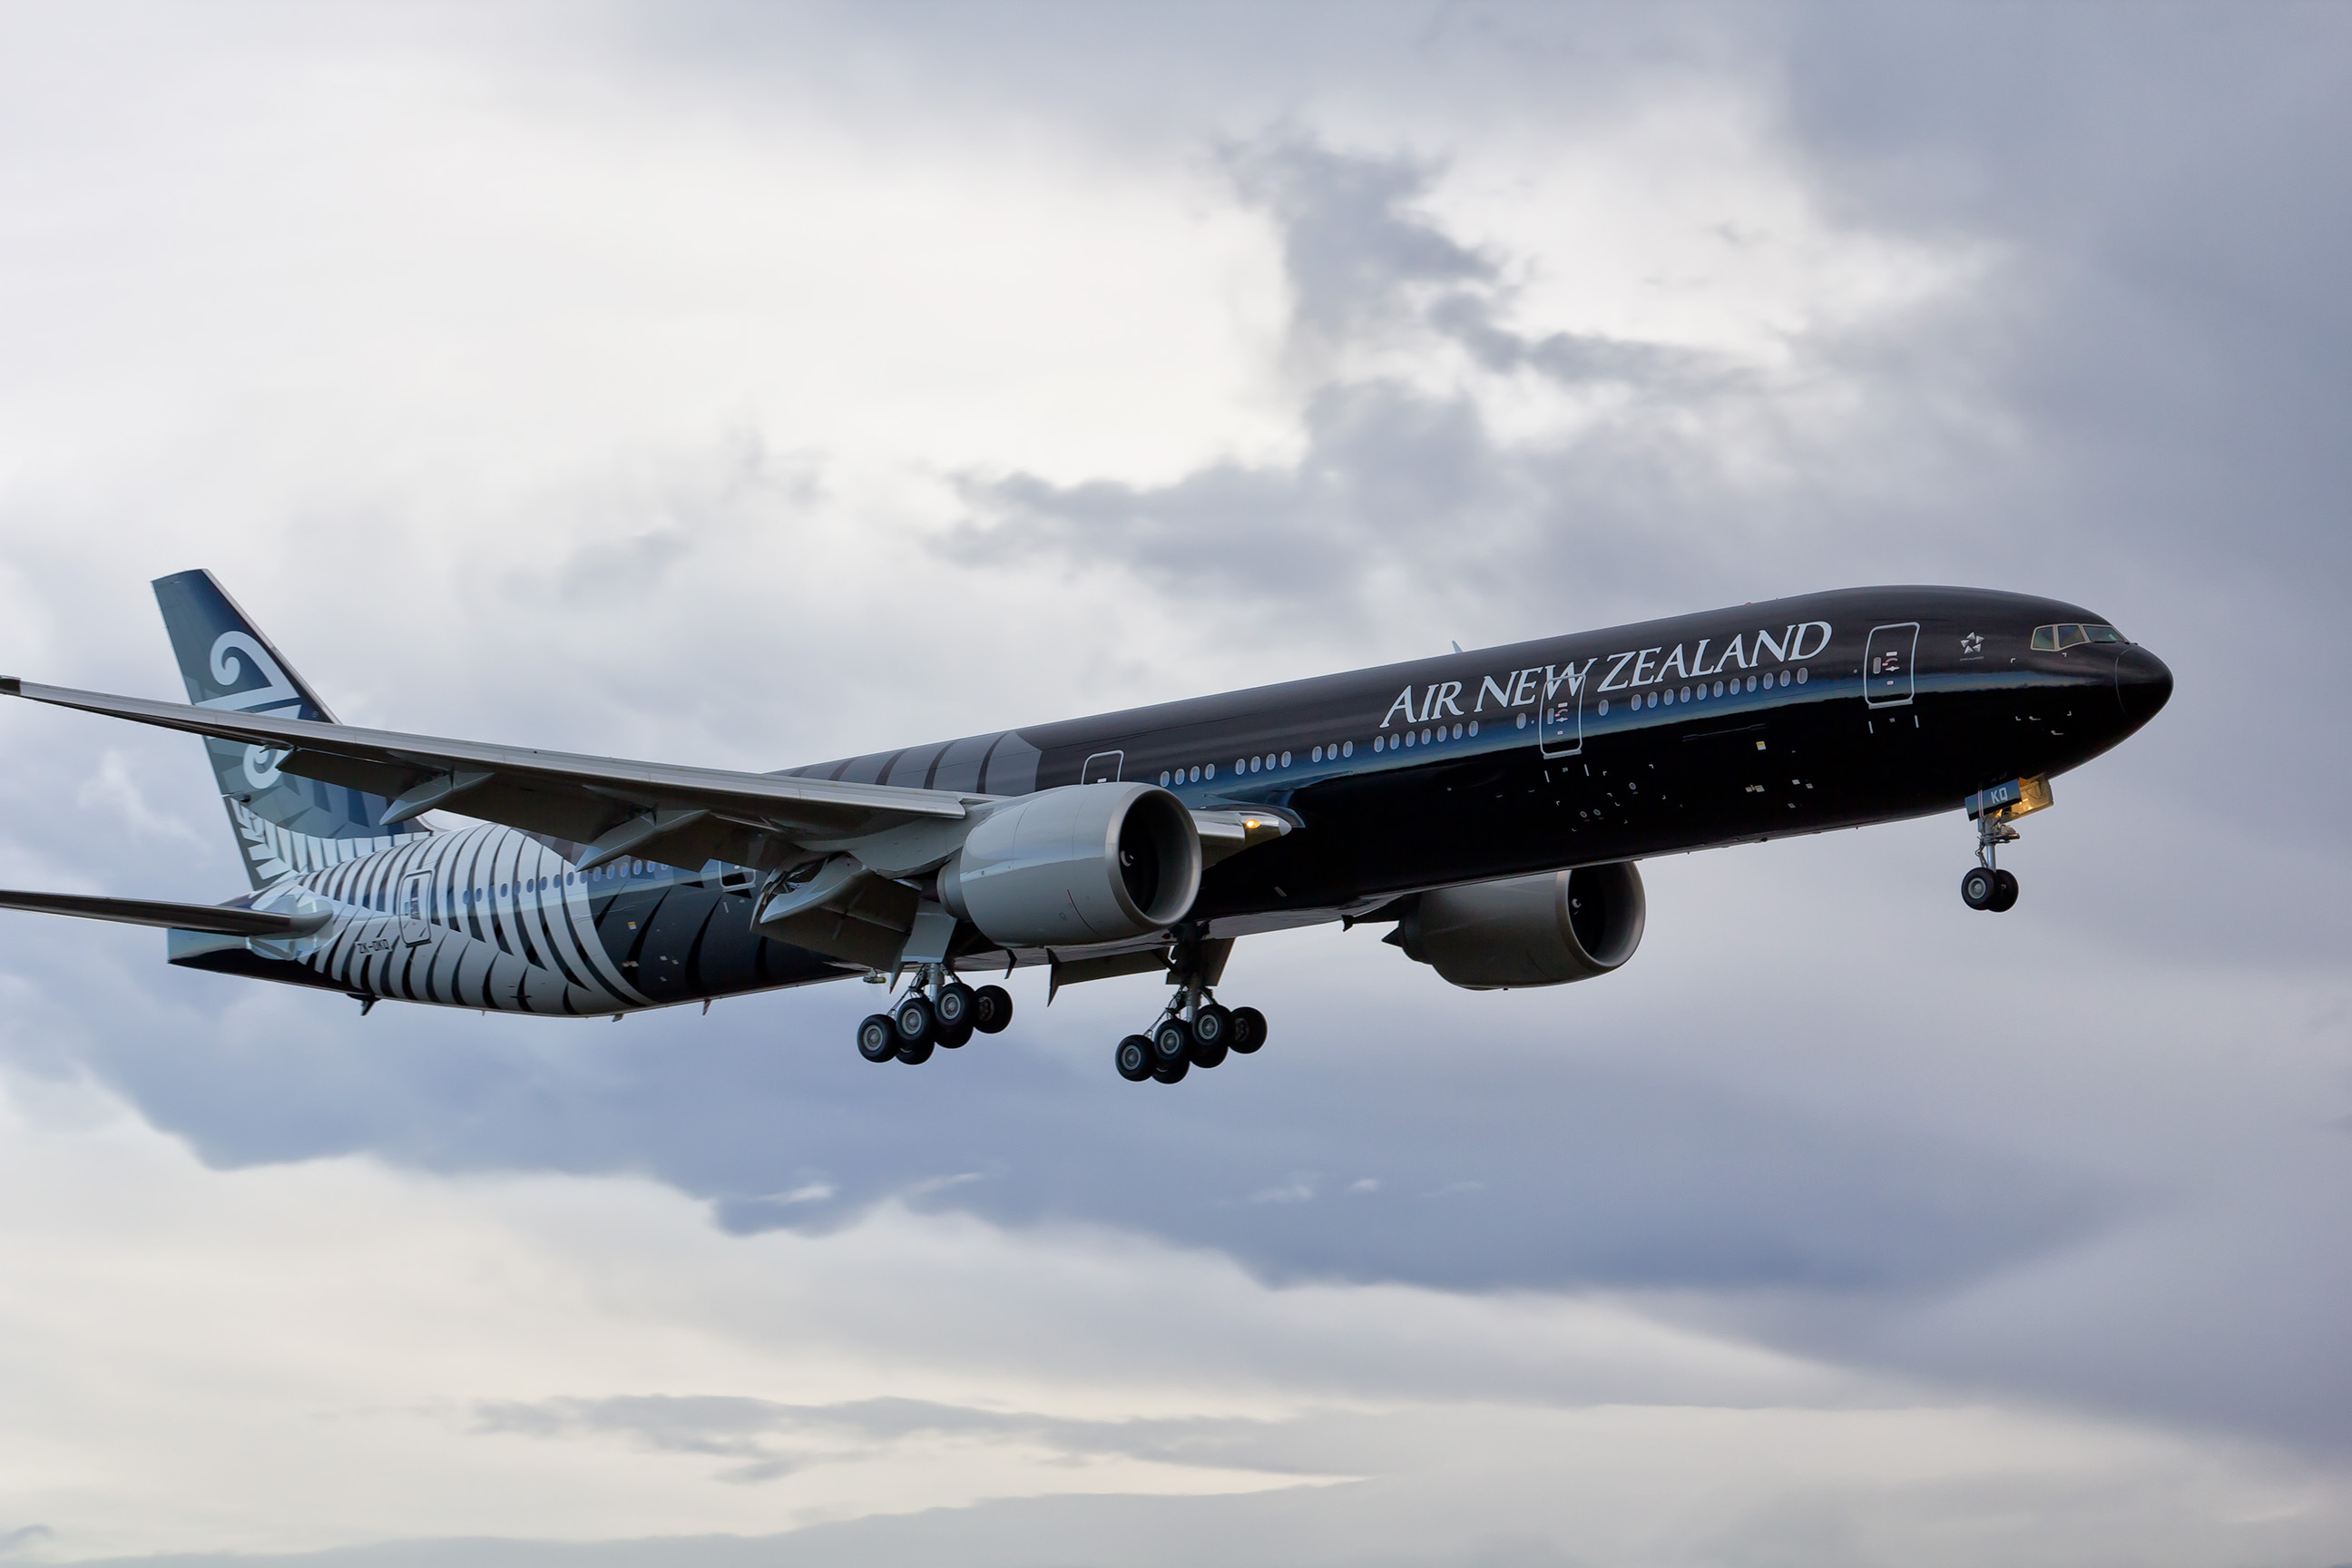 An Air New Zealand's Boeing 777-300ERs in flight. Image via Airline Reporter.